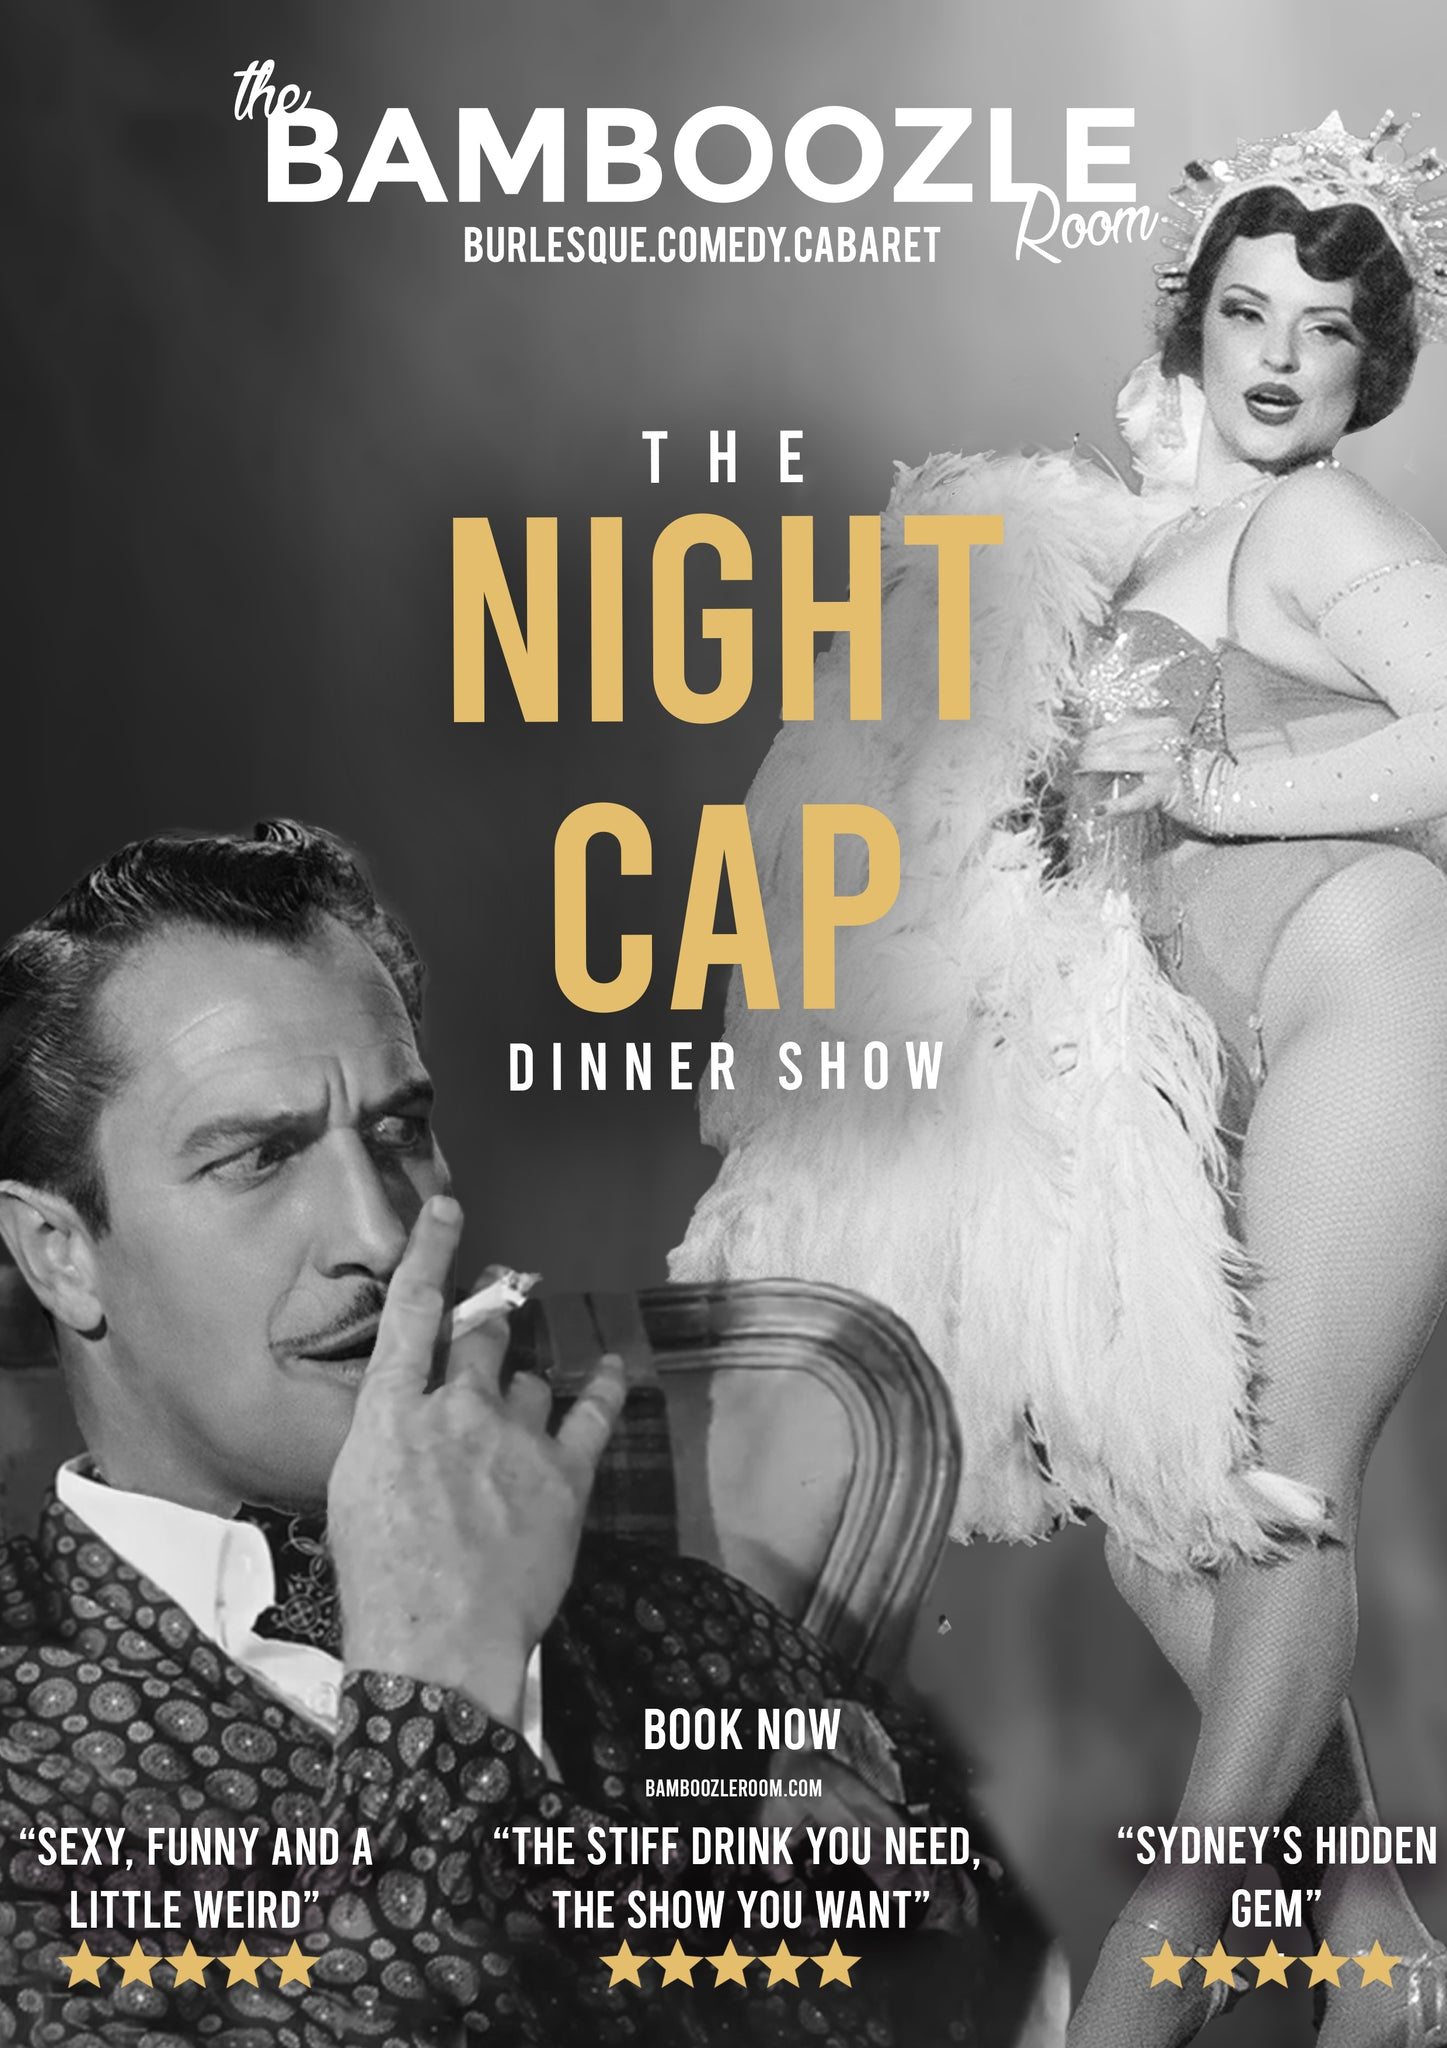 The Night Cap Dinner Show